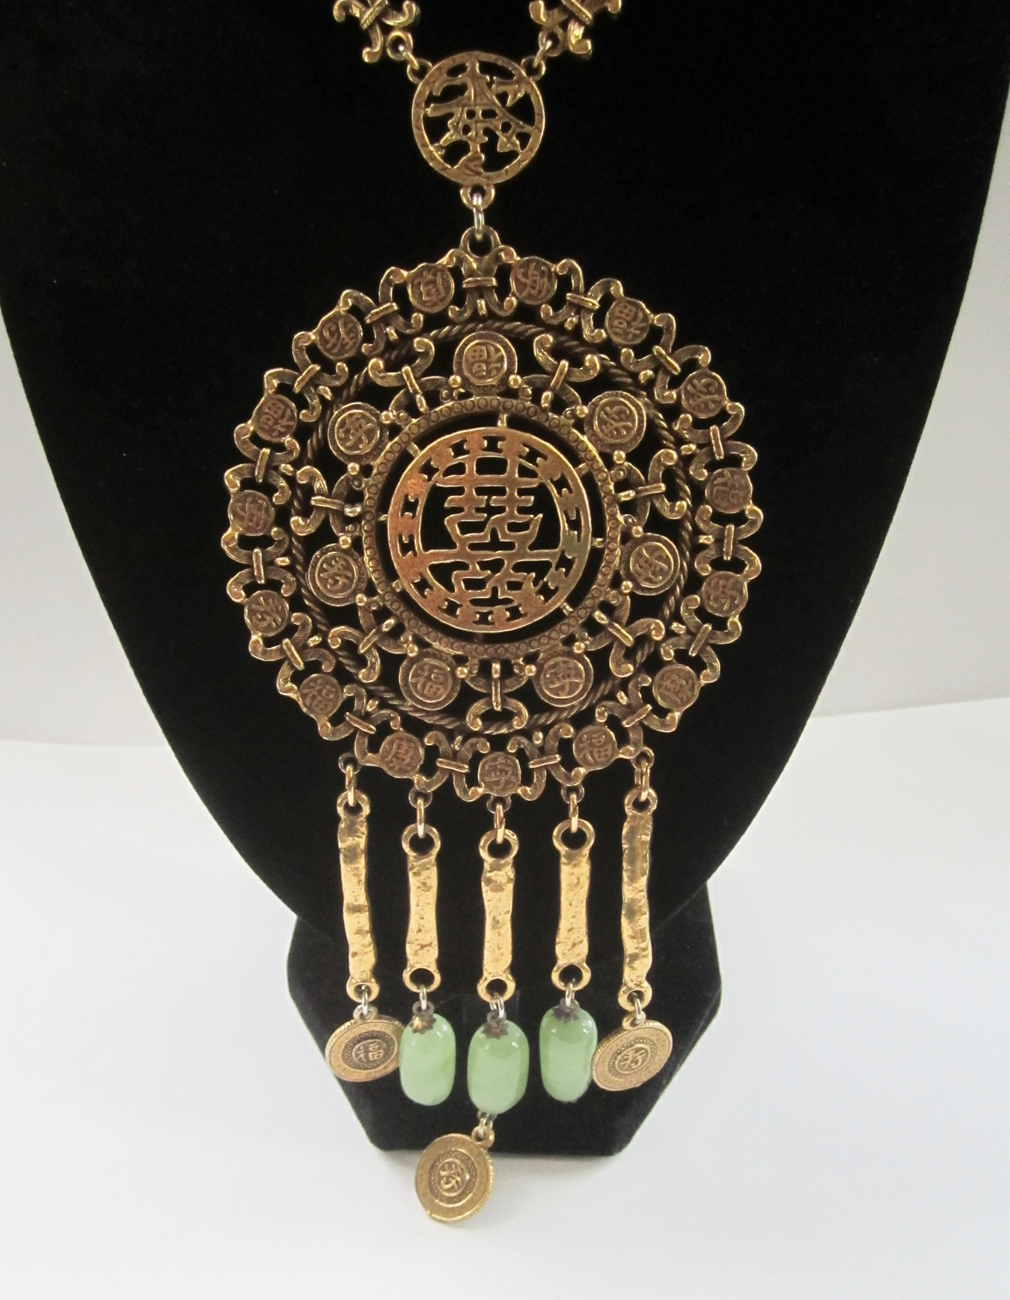 Goldette Runway Style Asian Themed Pendant Necklace. c. 1960s.